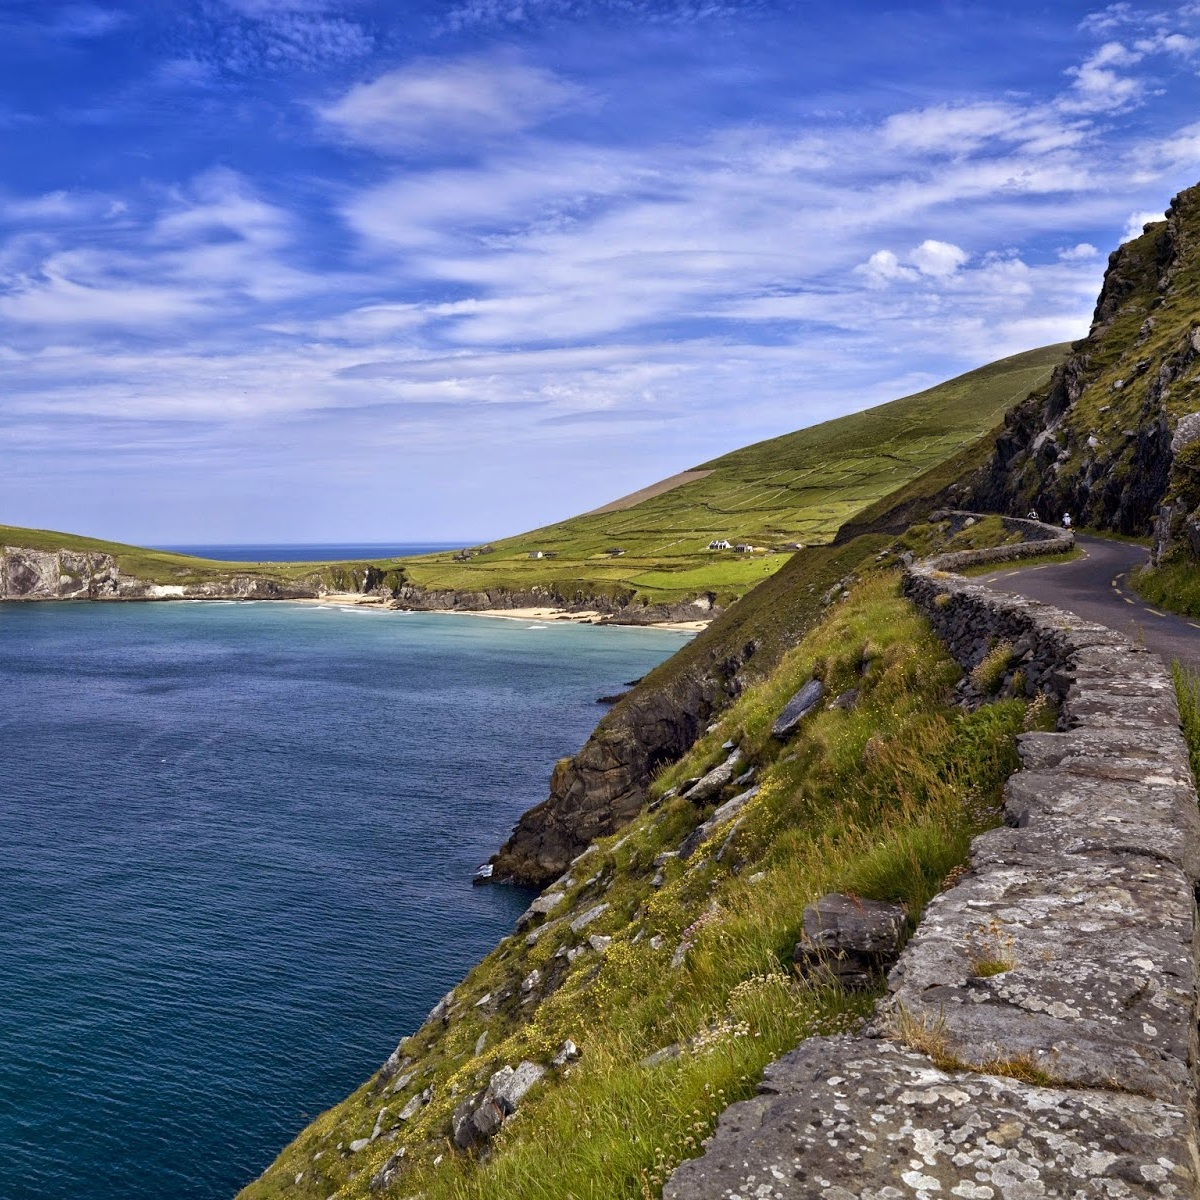 Atlantic Escape - Fancy a slightly longer tour? Why not combine Western Wilds with Kingdom of Kerry to make a spectacular five day tour and save €269. Atlantic Escape features rugged coastlines, the famed Ring of Kerry and the spectacular Dingle Peninsula.